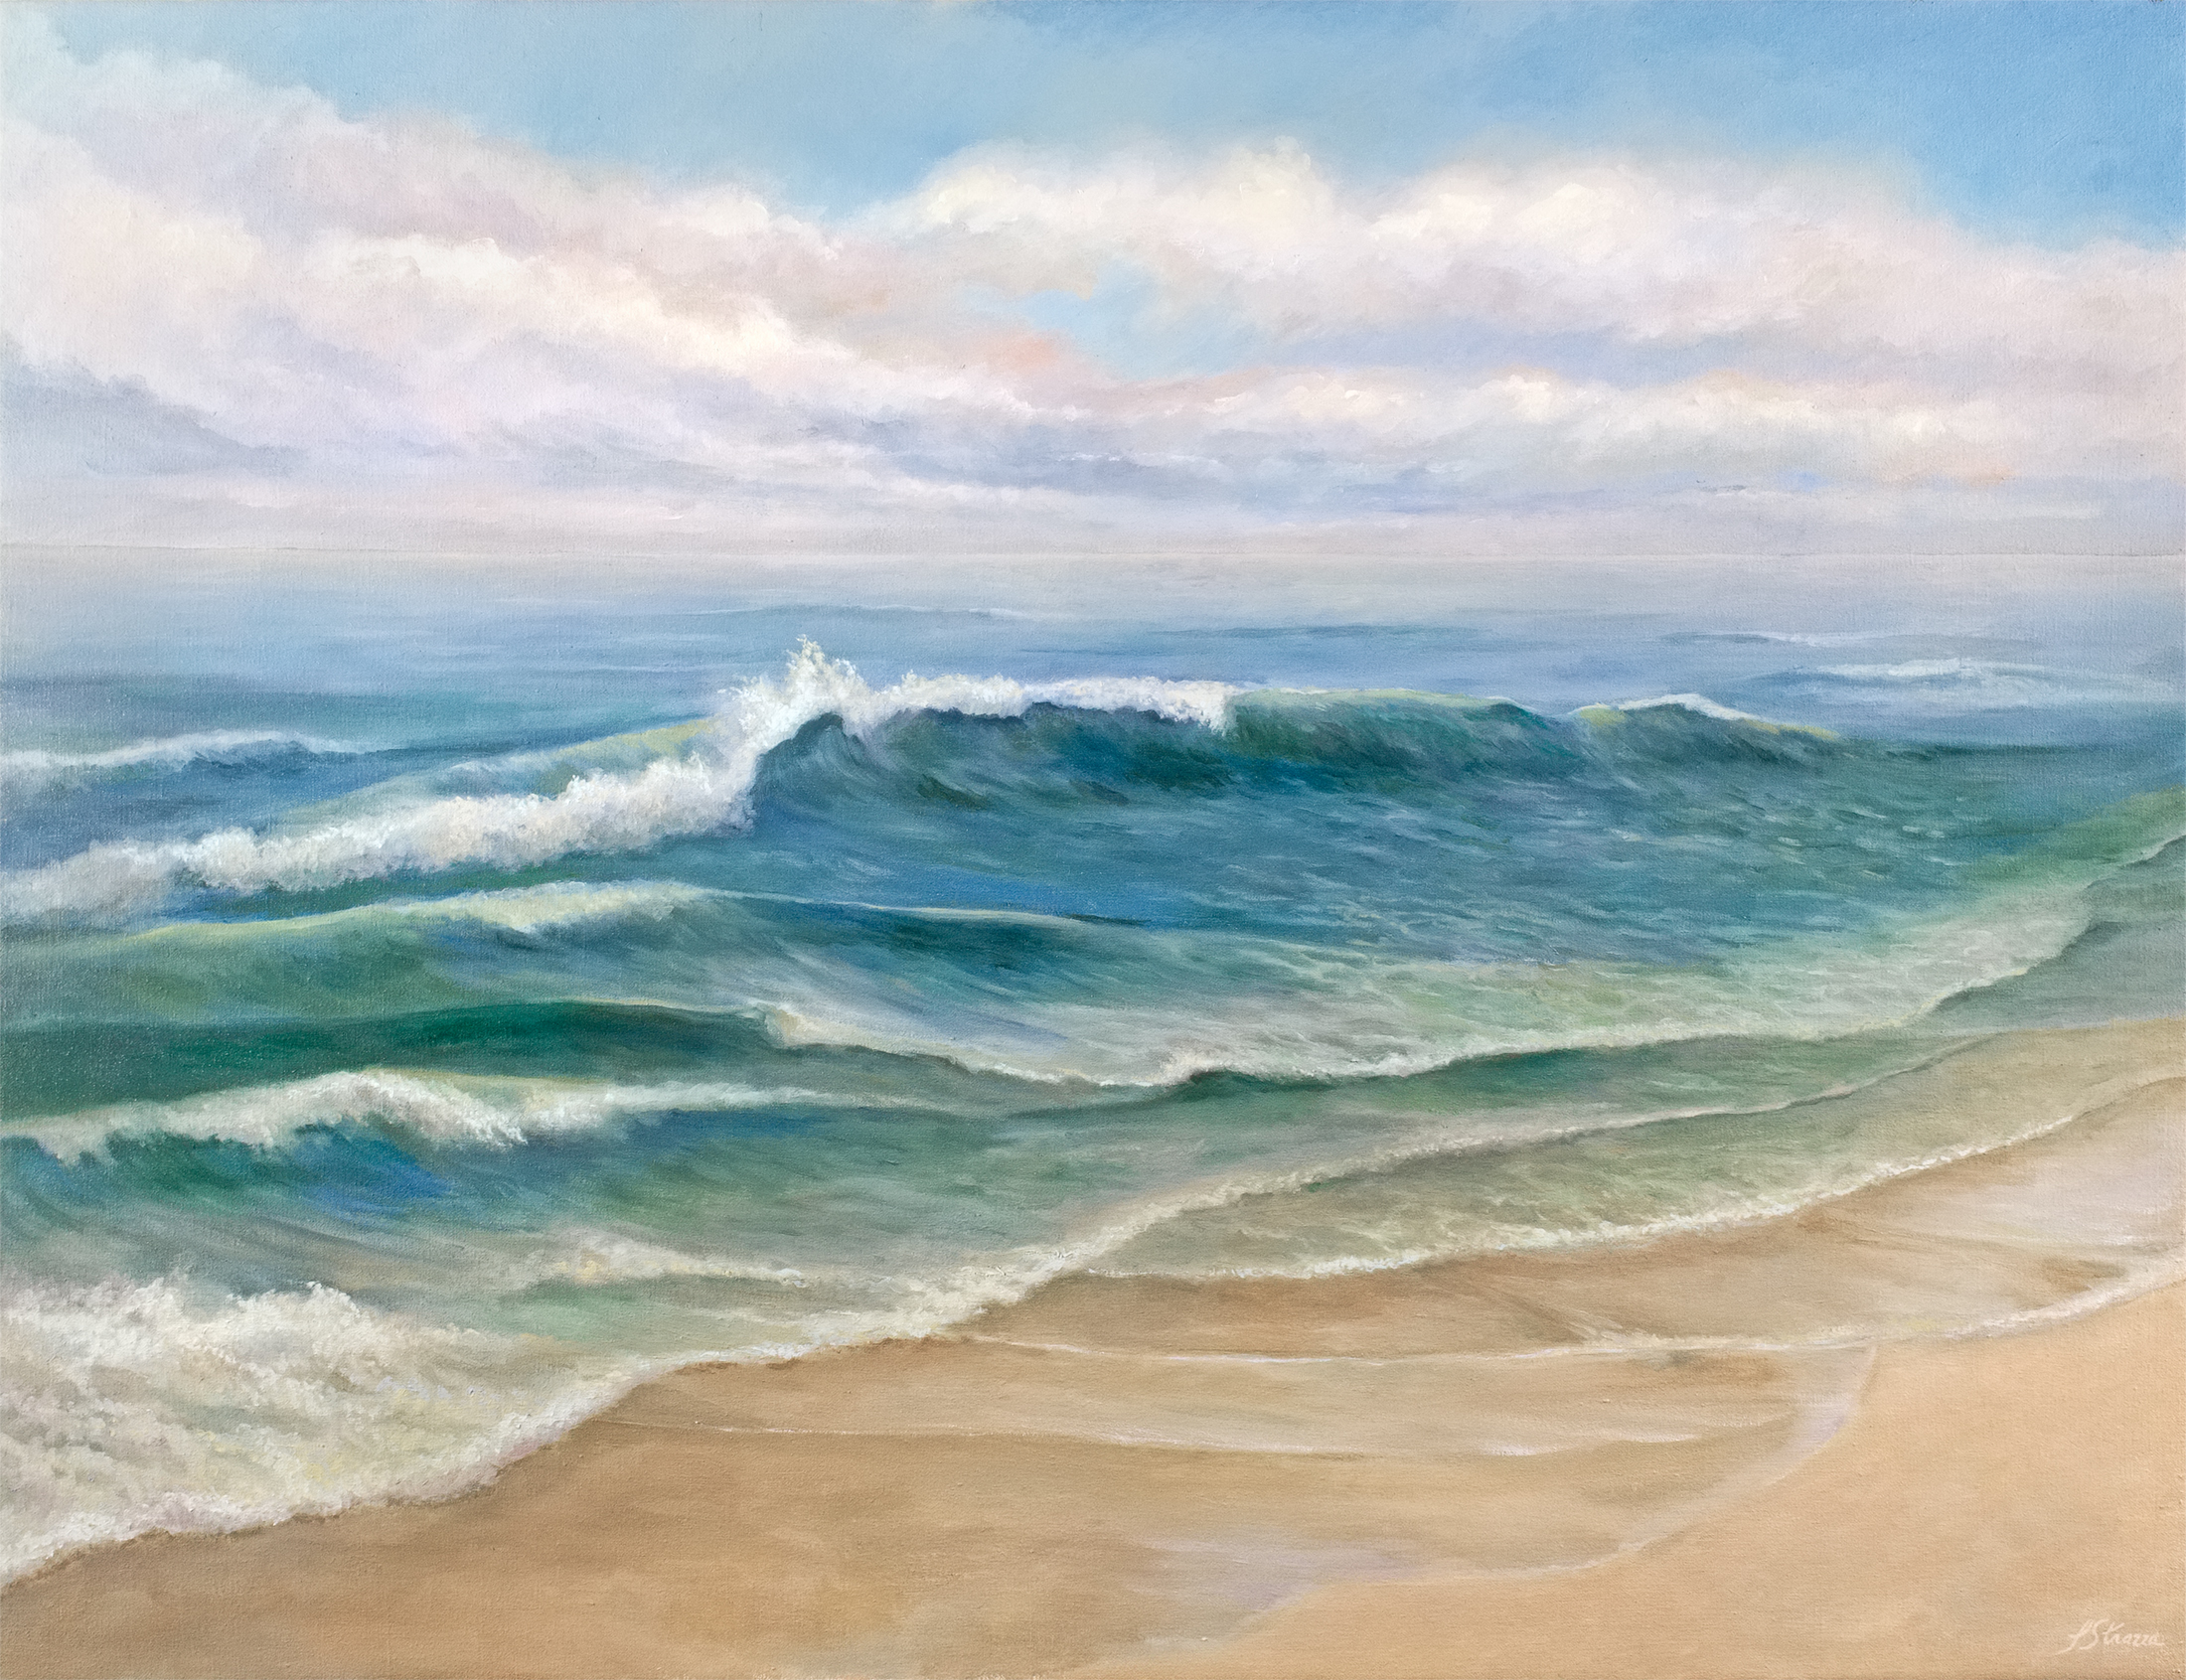 Changing Tides by Lisa Strazza